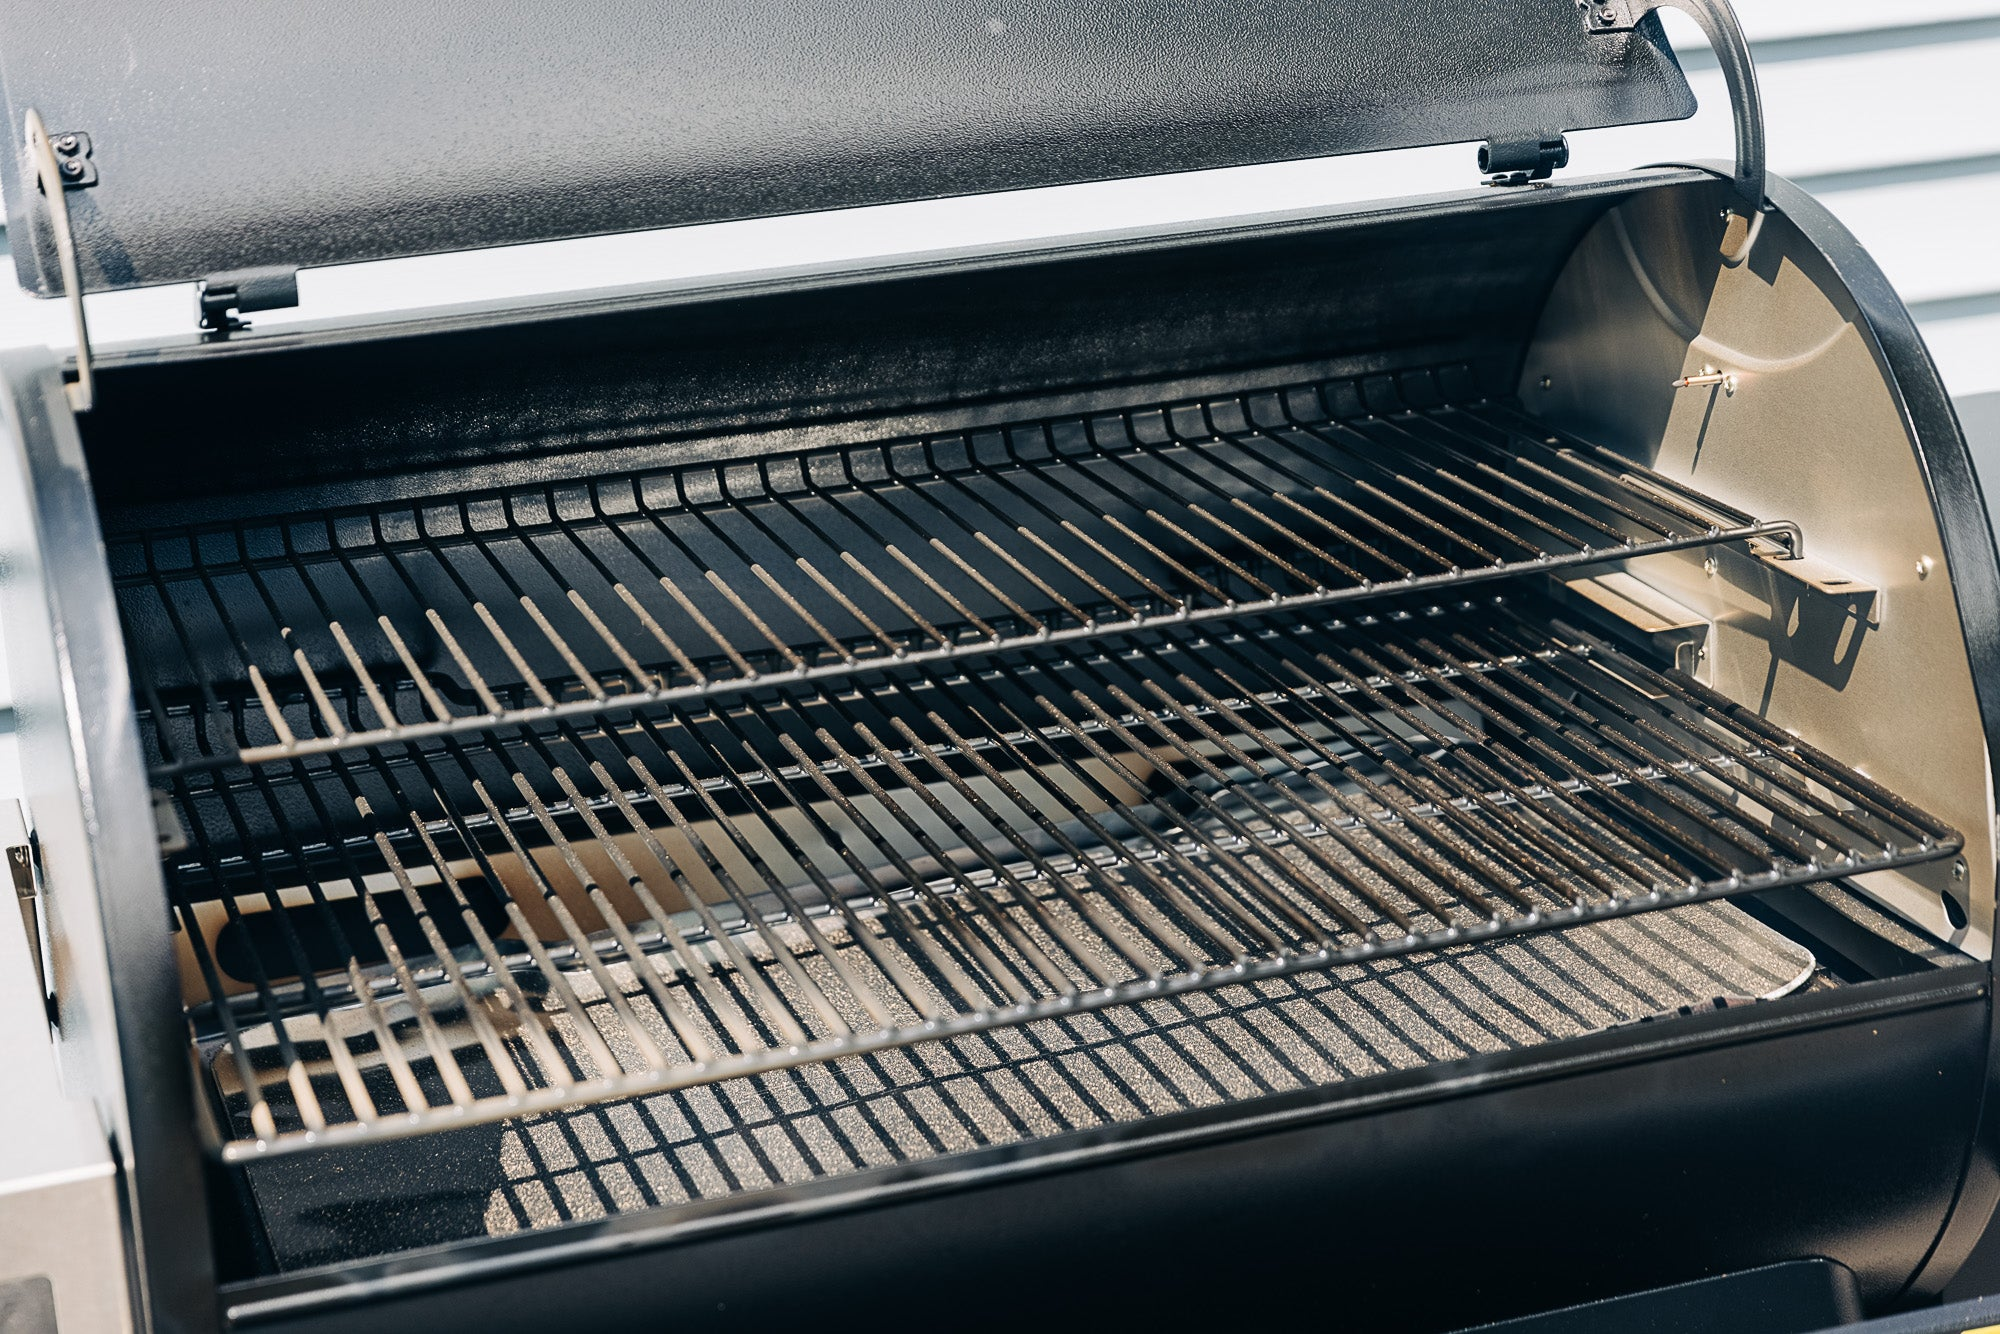 Inside of the Traeger Ironwood 885 pellet grill